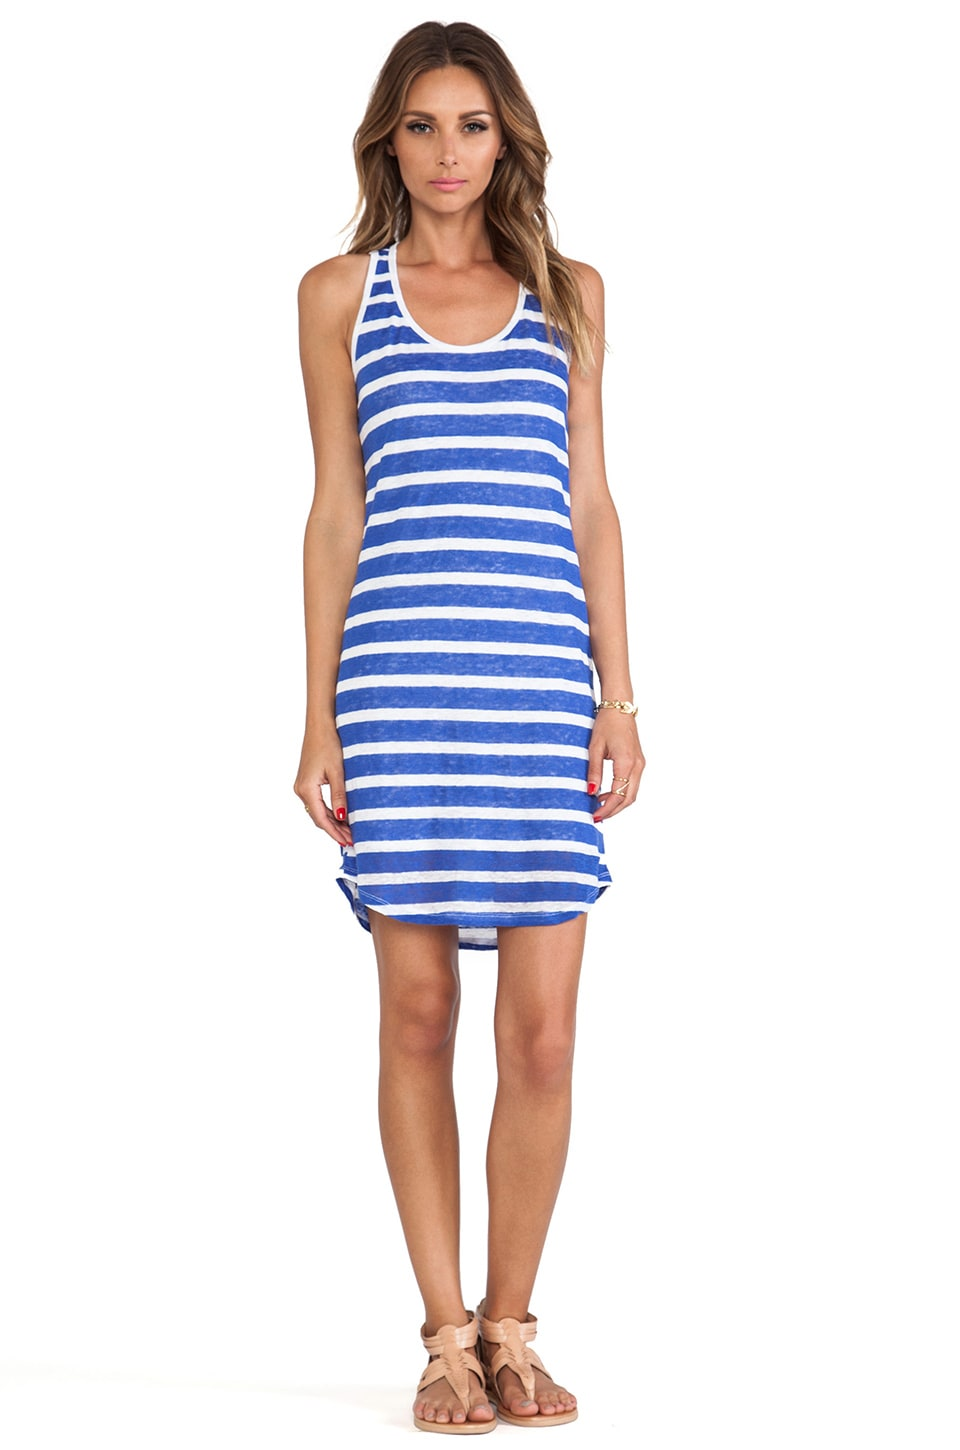 C&C California Striped Tank Dress in Dazzling Blue